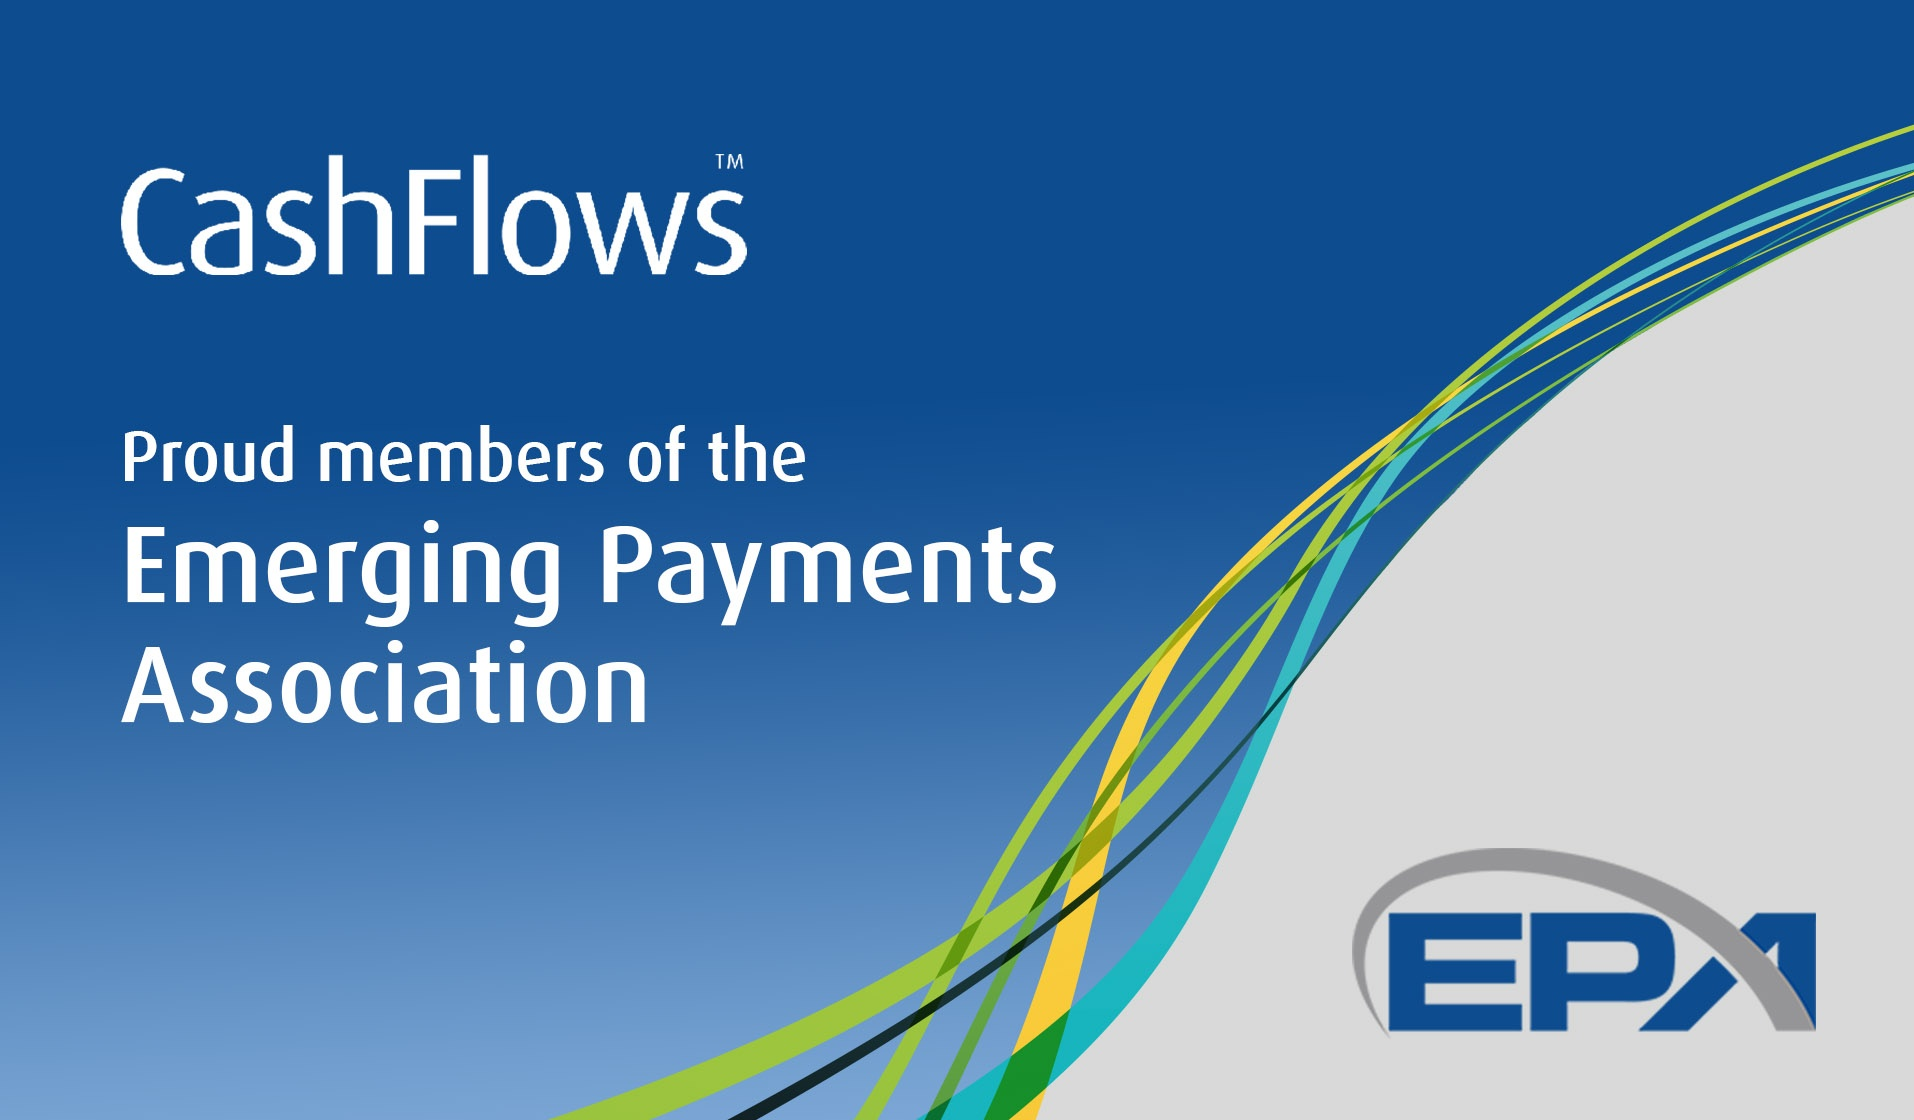 Cashflows joins the Emerging Payments Association